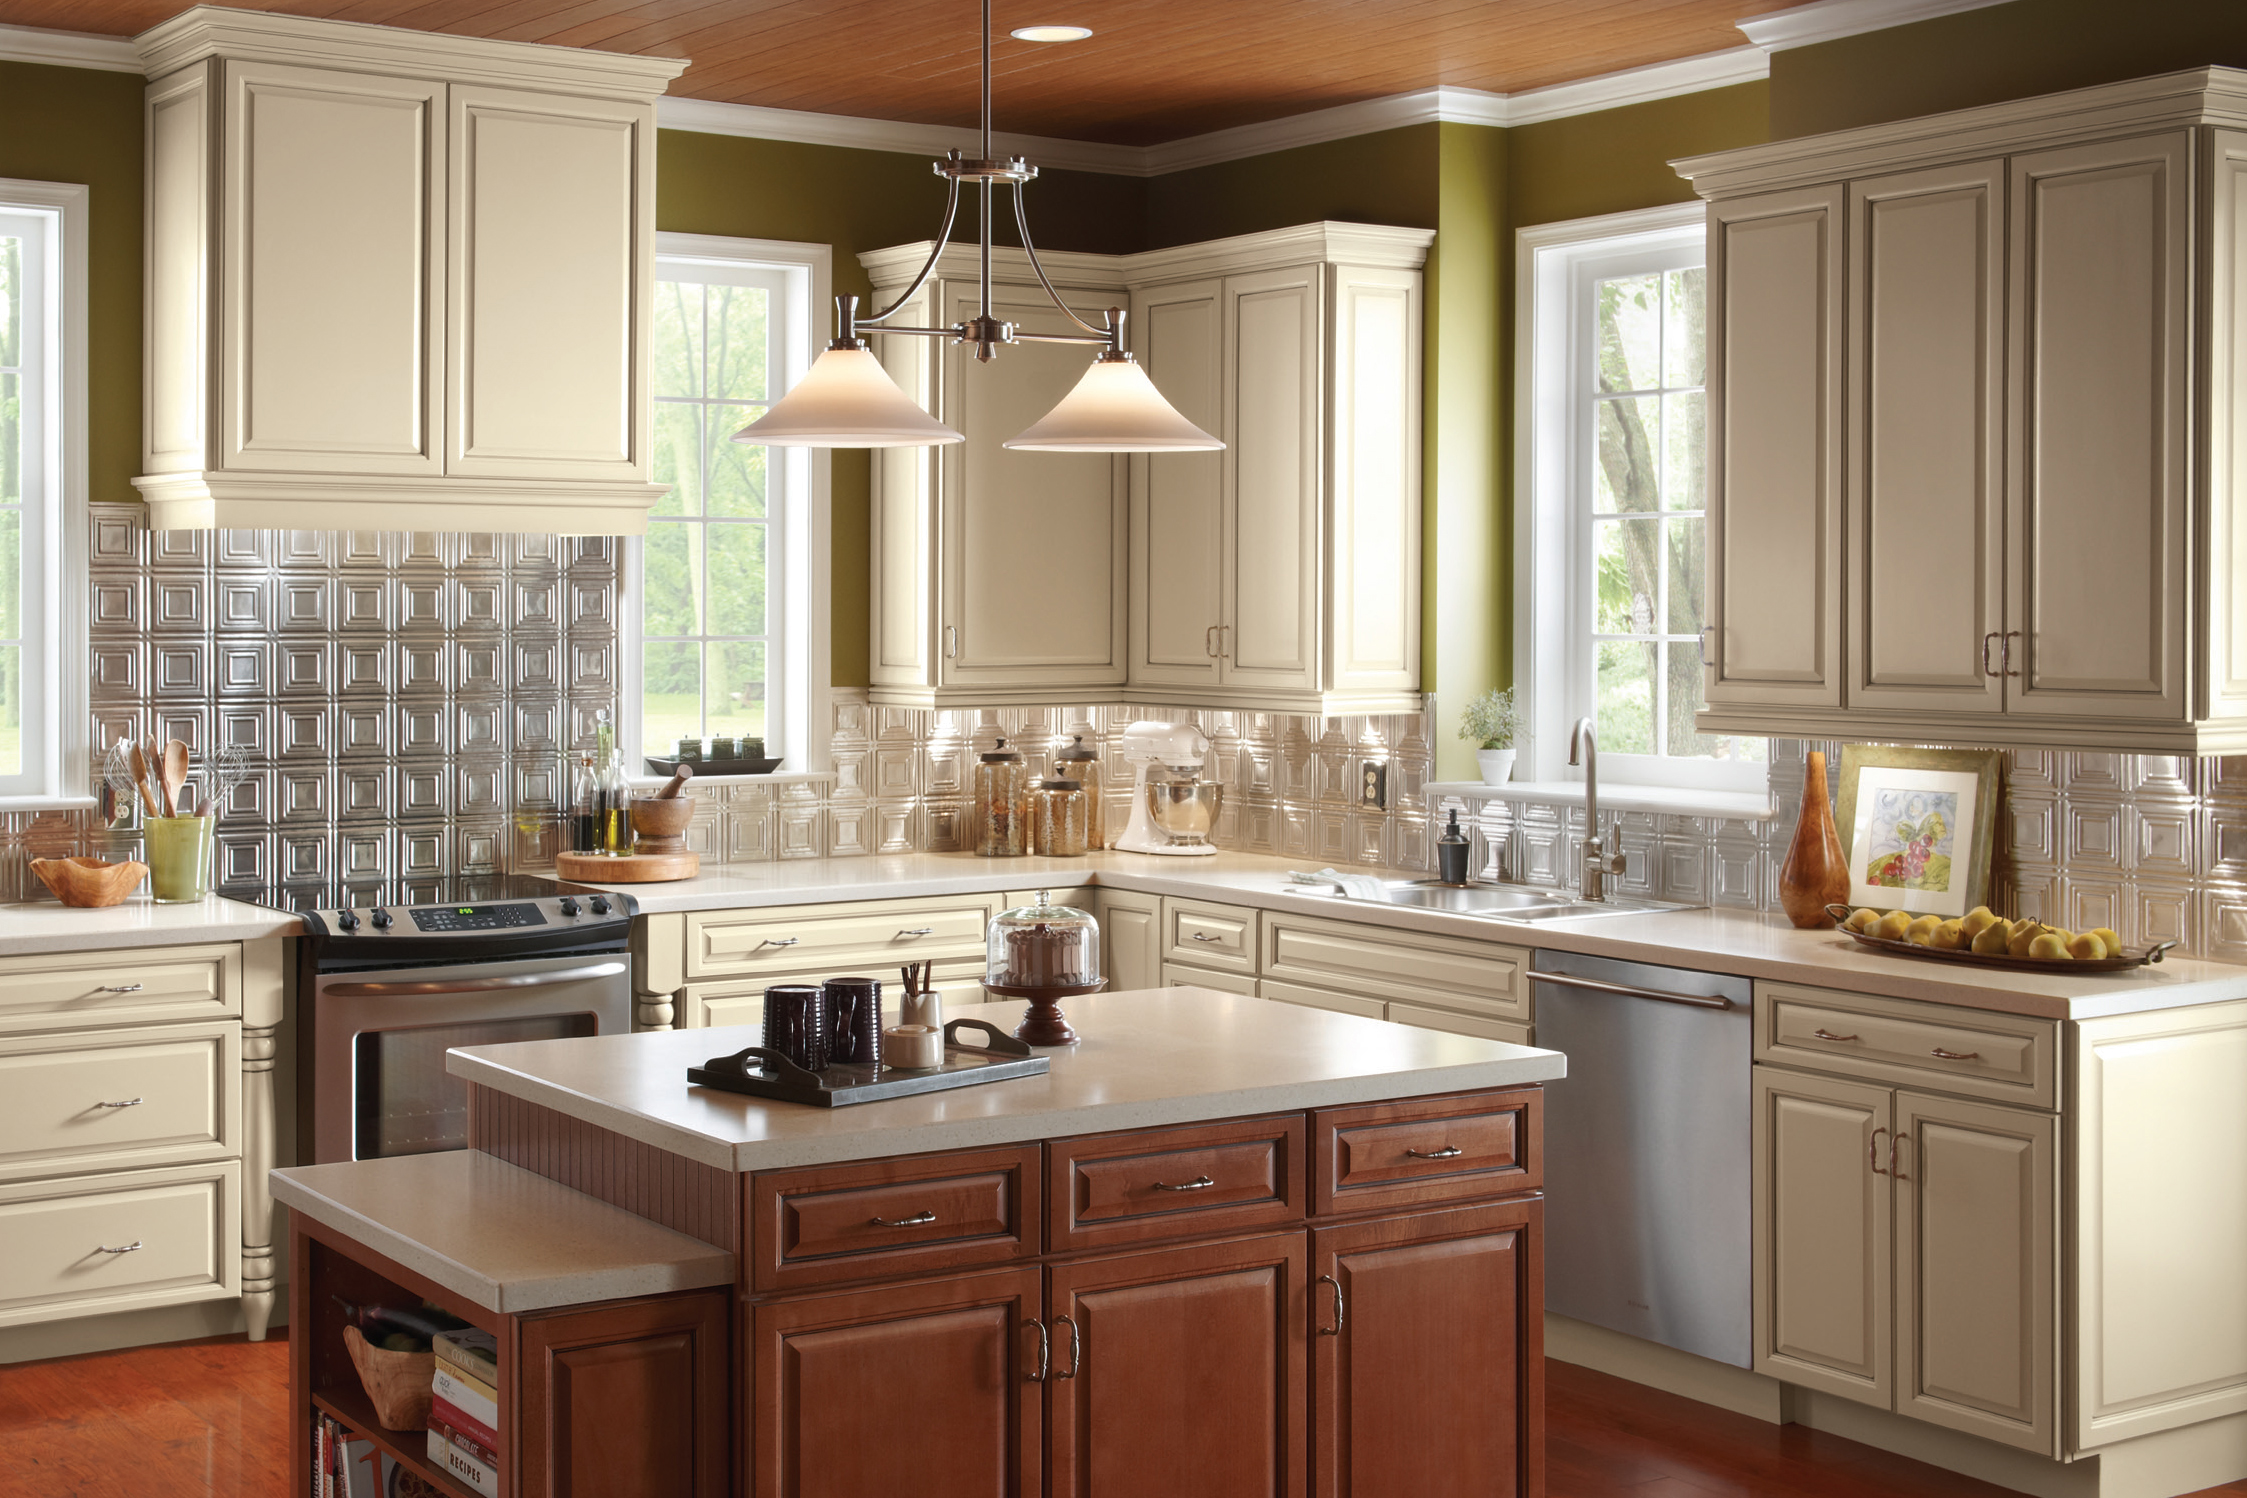 Echelon Wood Kitchen Cabinets